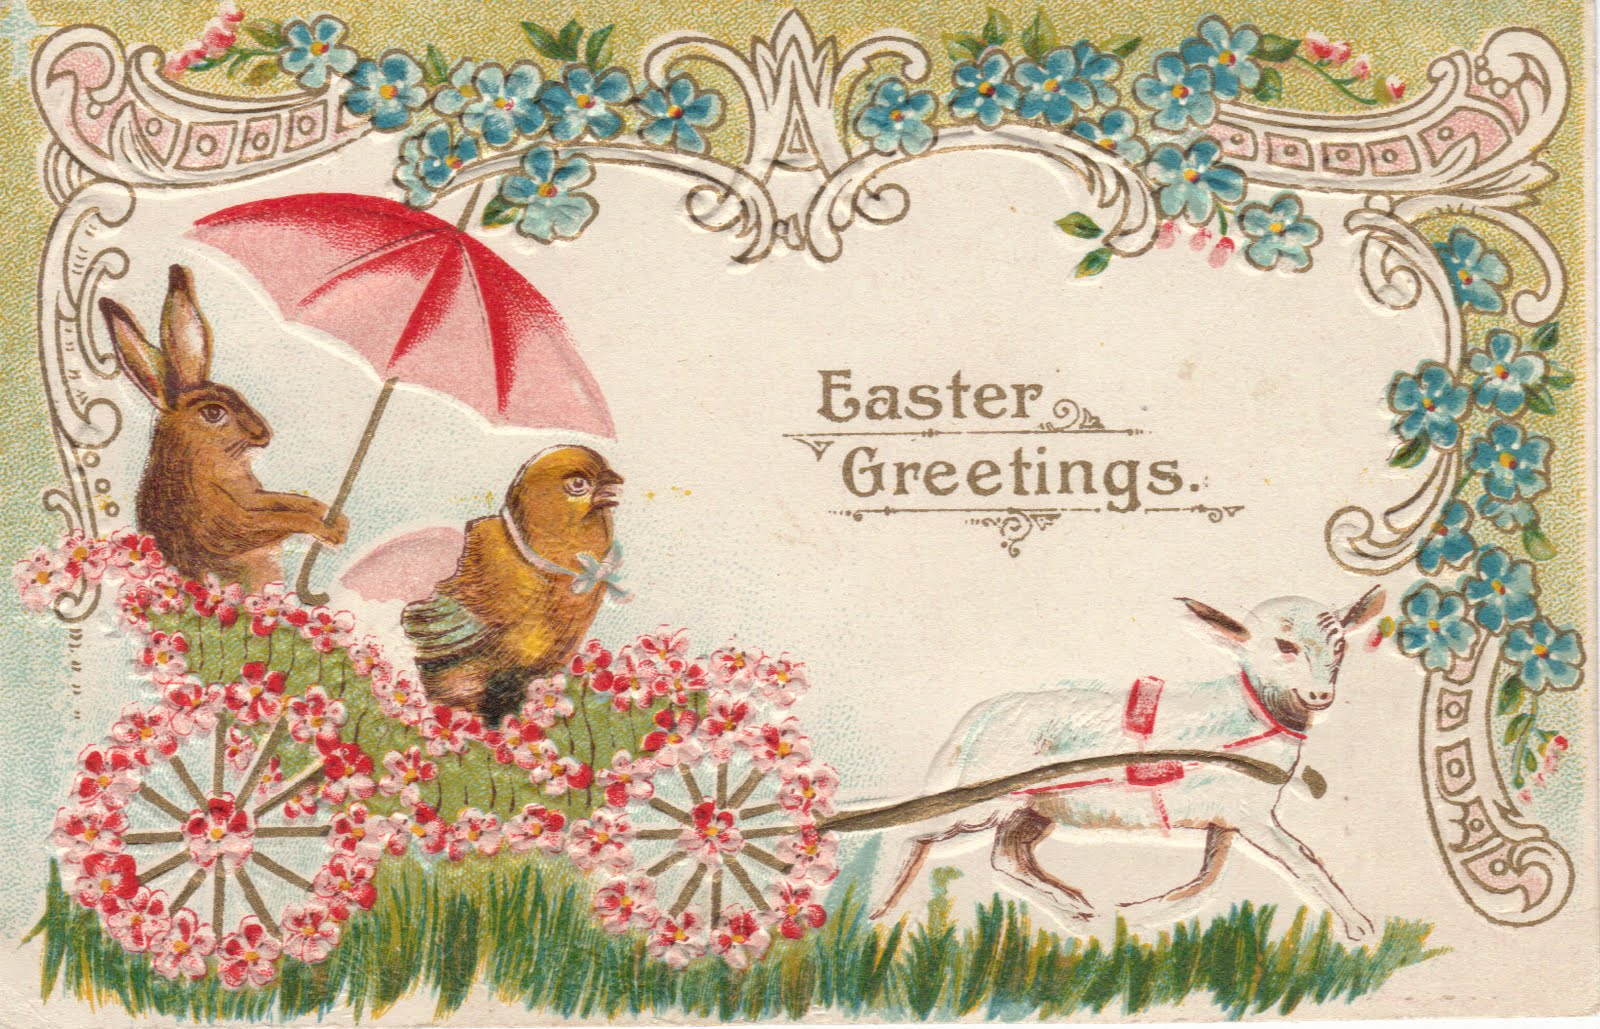 Best Easter Greetings Cards And Wishes For Free Free Christian